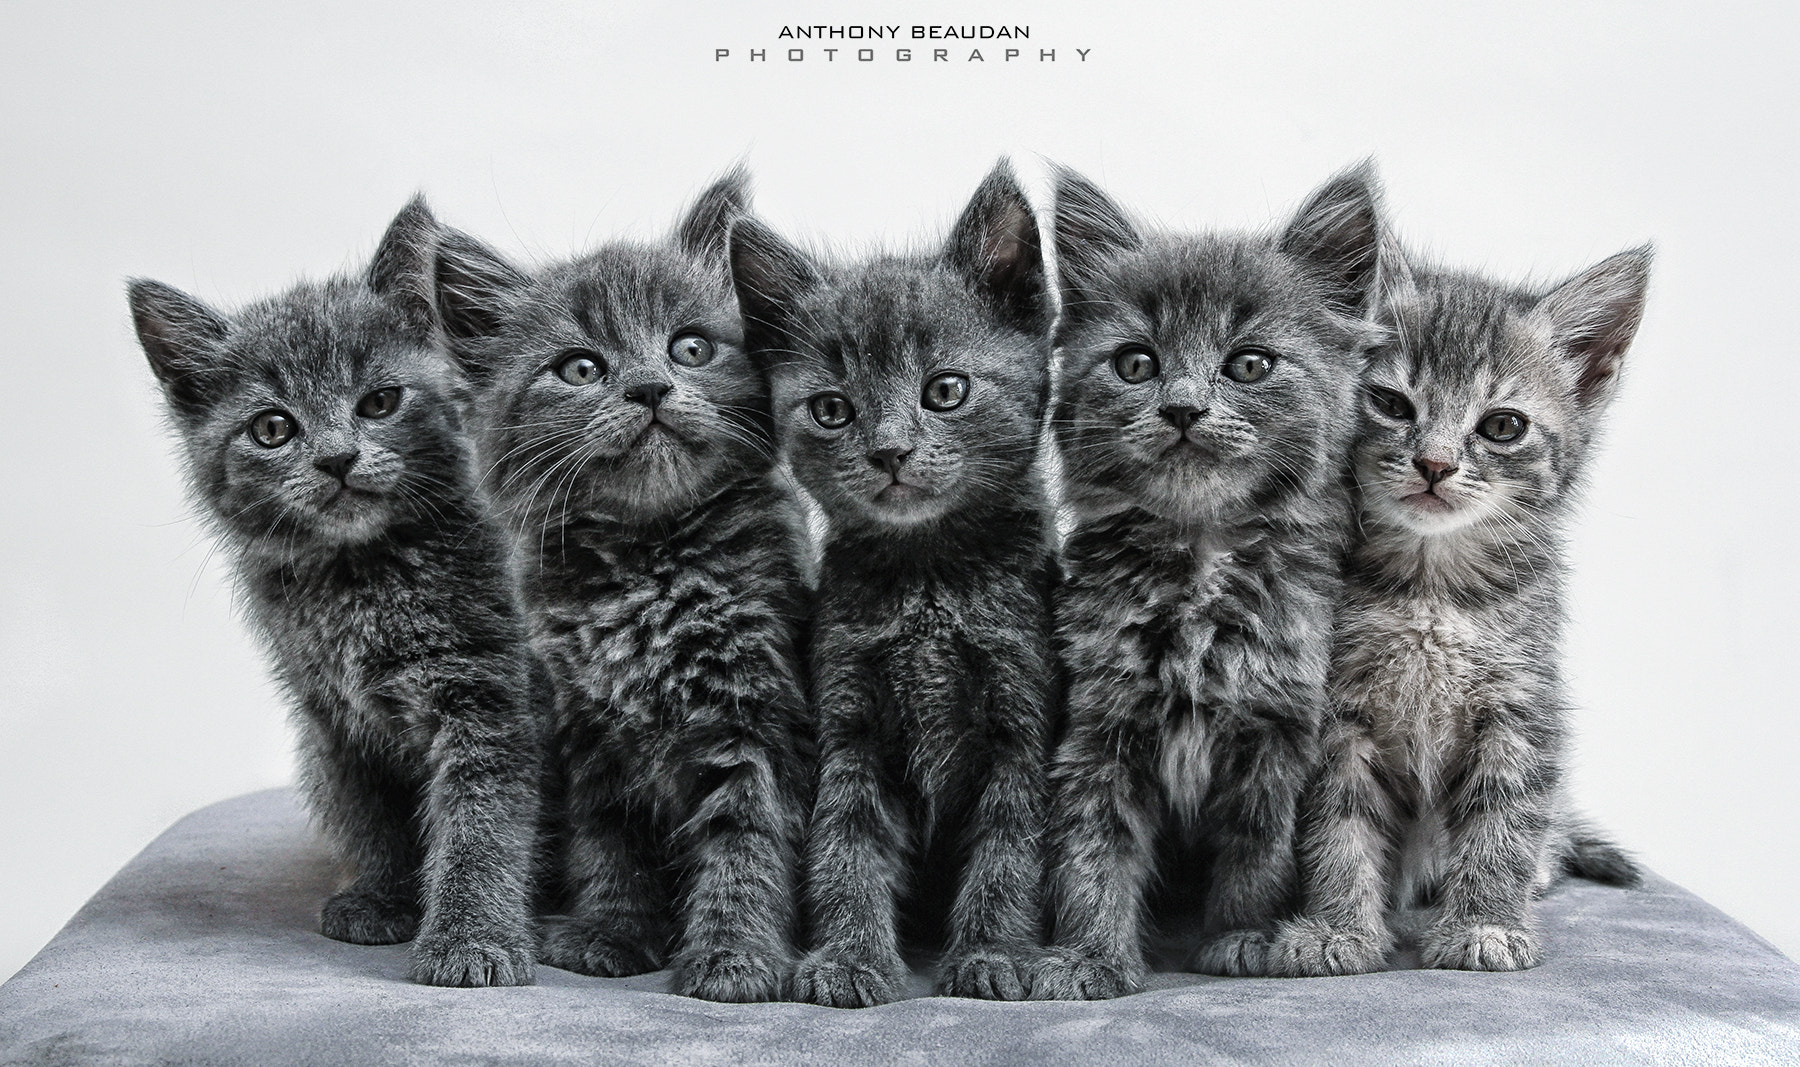 Photograph The A Team !  by Anthony Beaudan on 500px